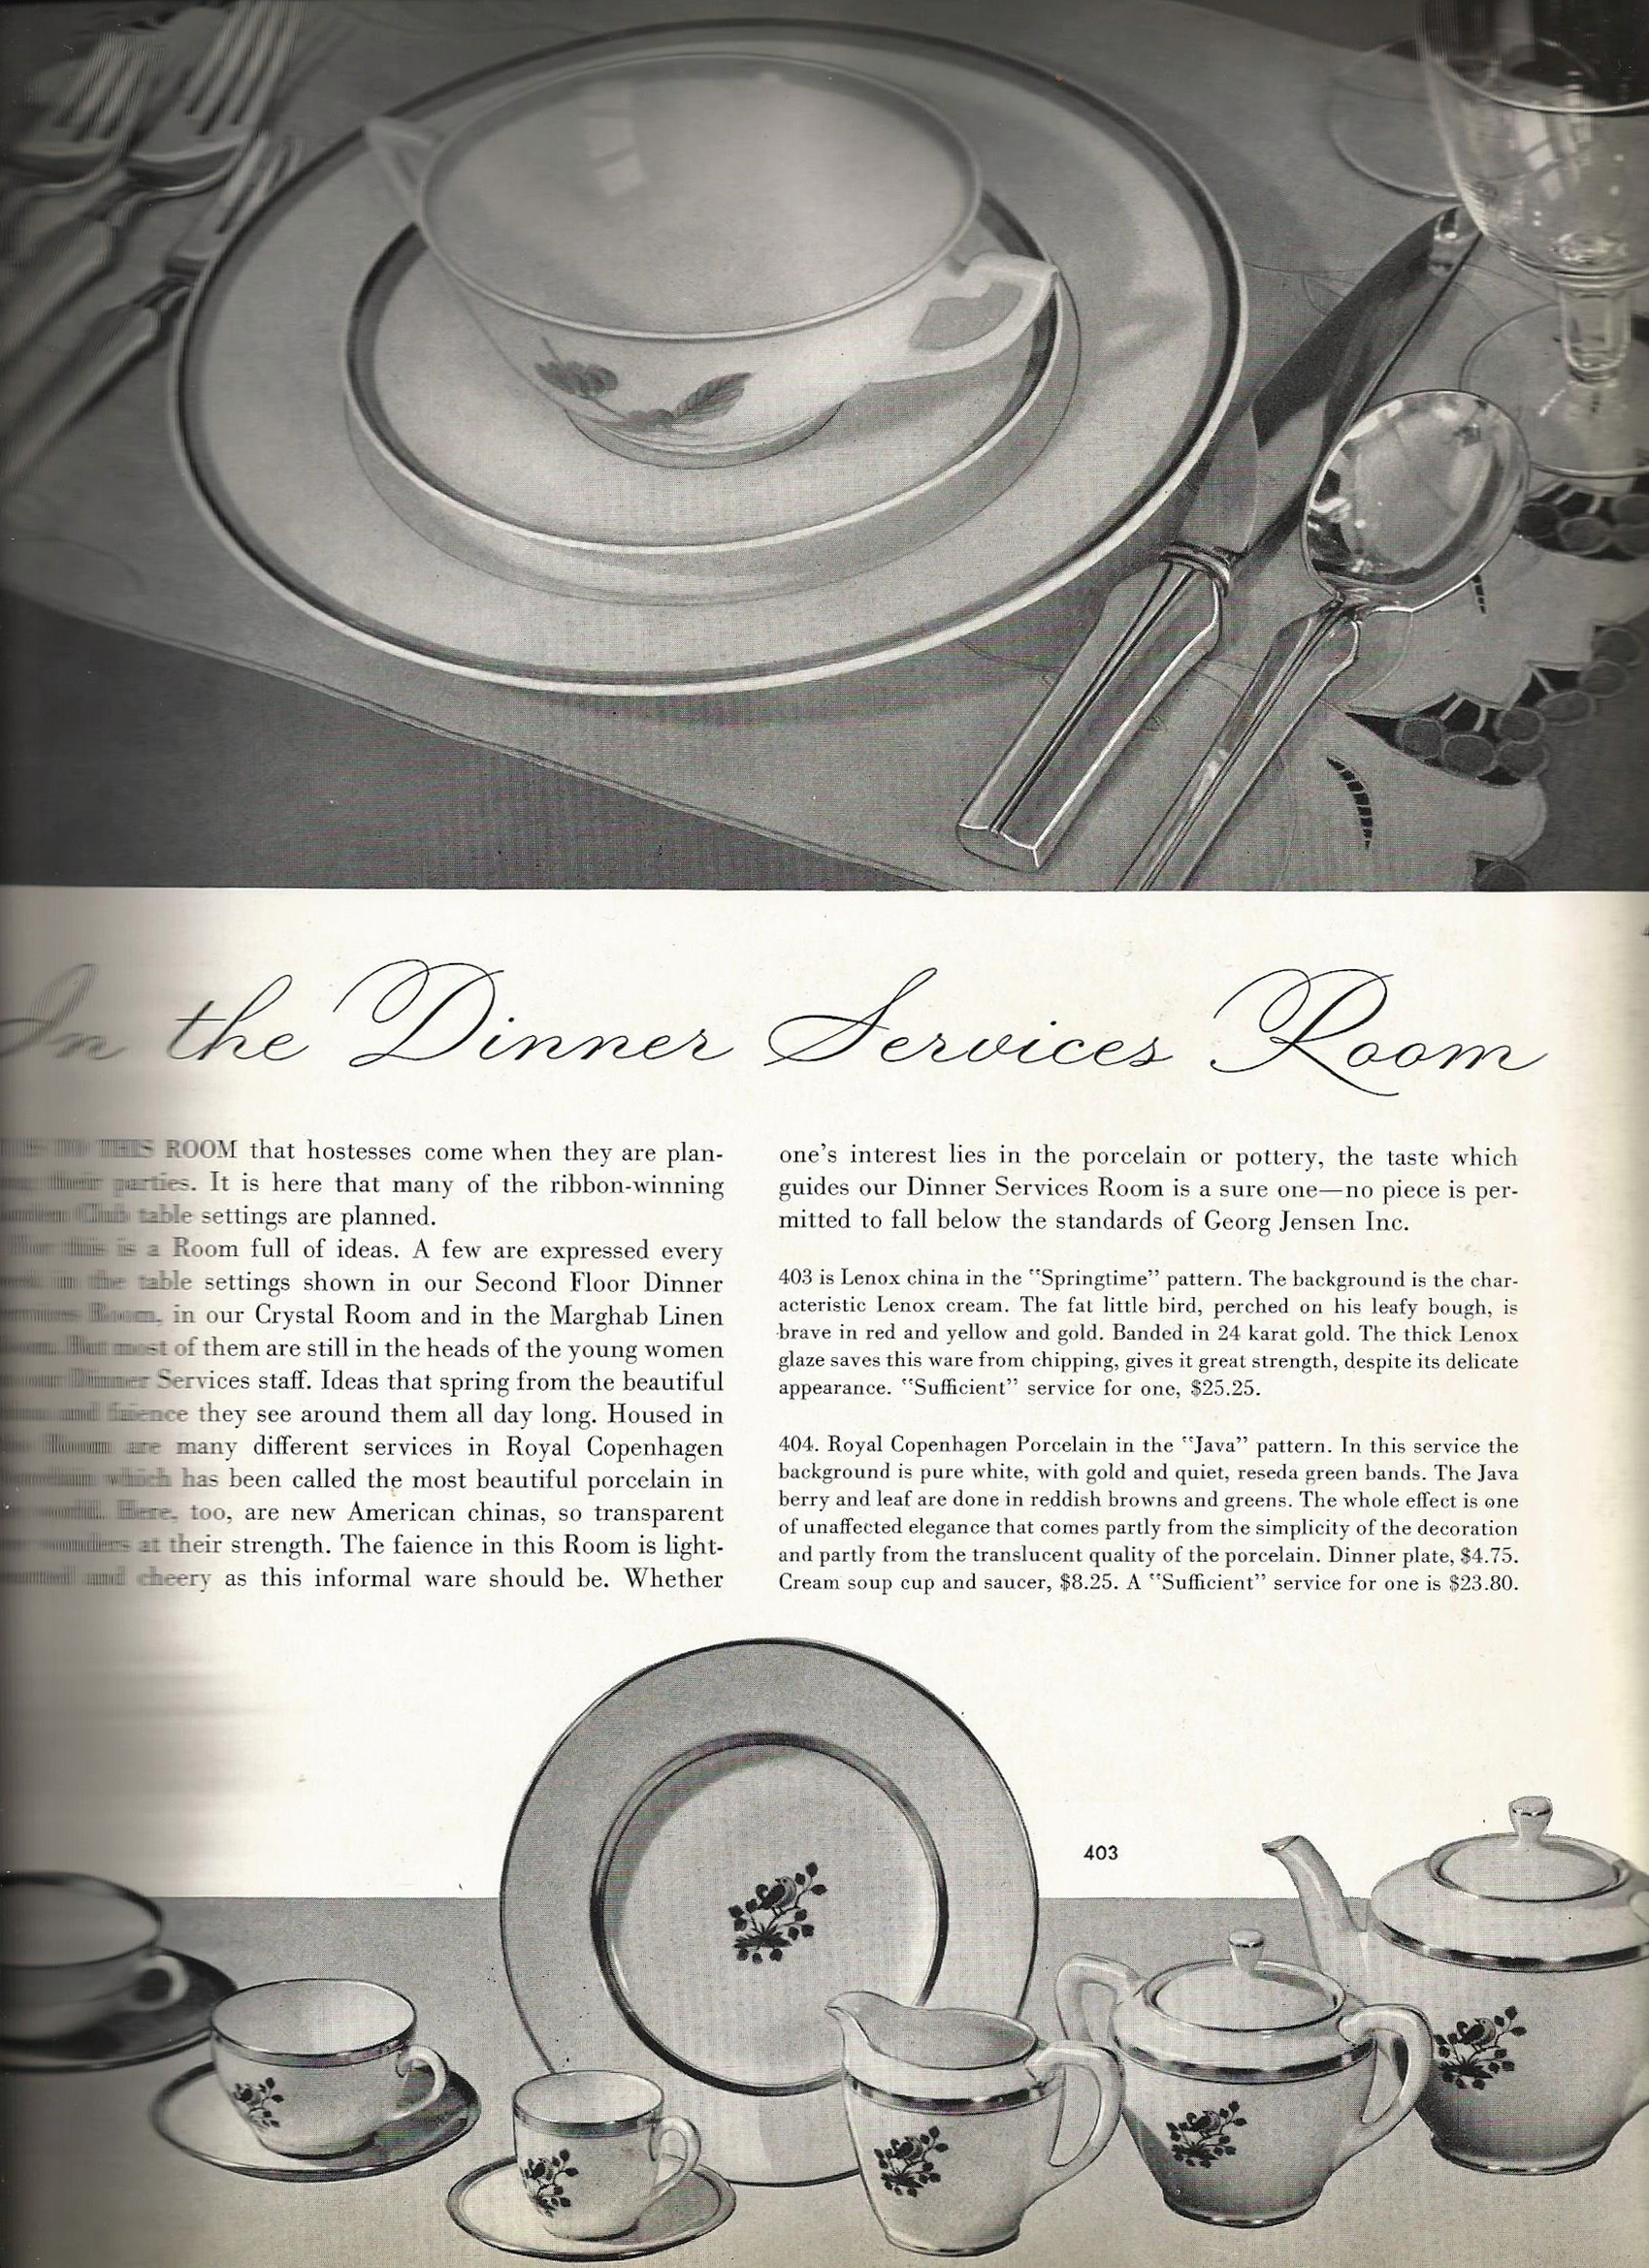 "As we drift further into this catalog, other items than Georg Jensen's silver are offered for sale. This particular page starts the section devoted to porcelain crafts, and the topmost picture is of the Royal Copenhagen ""Java"" pattern. of note however, is that it is pictured with the ""Agave"" flatware set from Georg Jensen, and many of the illustrations in this section have Georg Jensen pieces used for display."